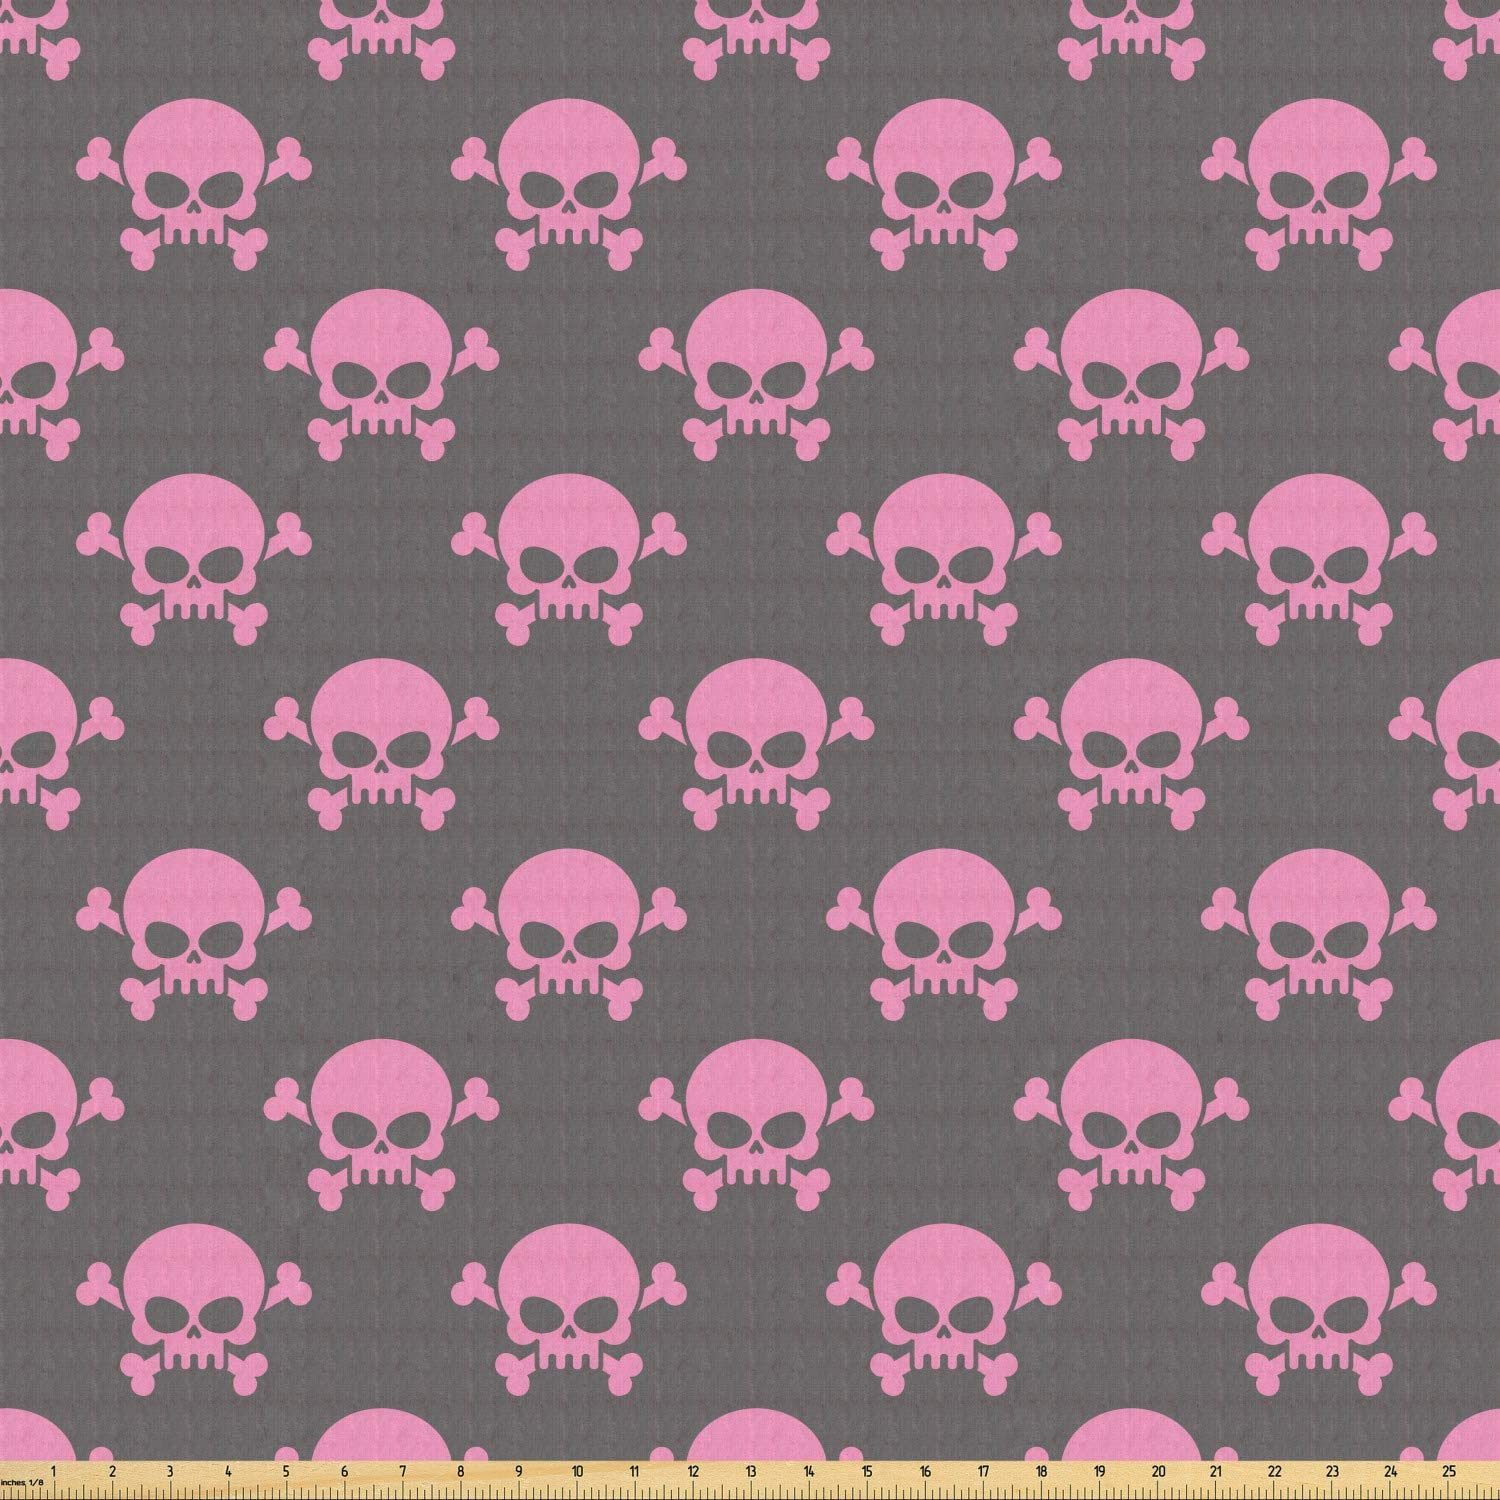 Lunarable Skull Fabric by The Yard, Vivid Pirate on Pale Background Head of a Skeleton and Bones Halloween Themed, Stretch Knit Fabric for Clothing Sewing and Arts Crafts, 1 Yard, Taupe Pink